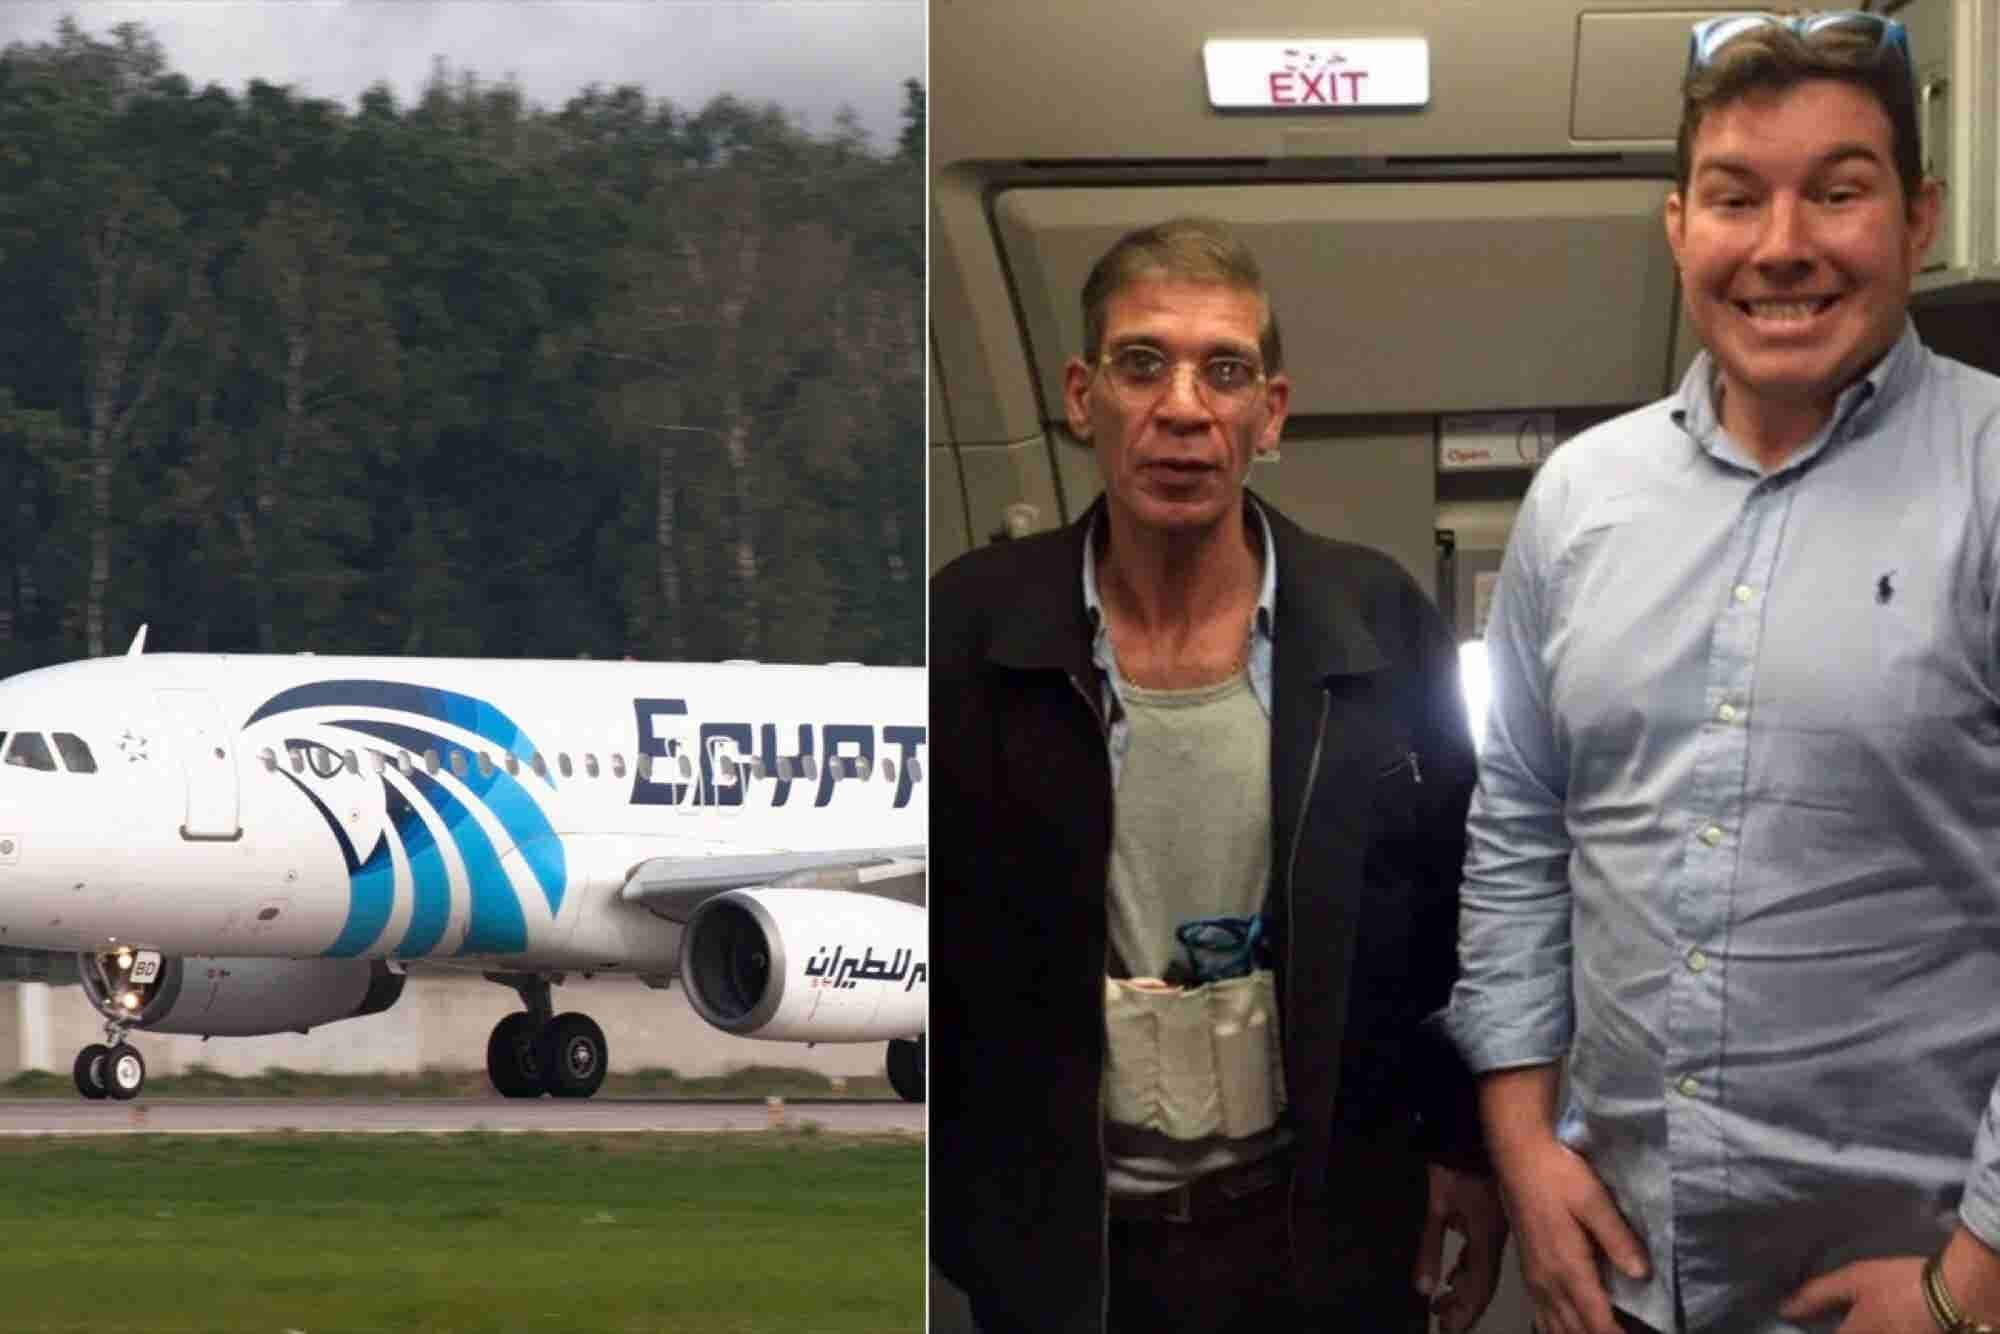 Hijacker Selfie Guy: Hero, Idiot or Both?